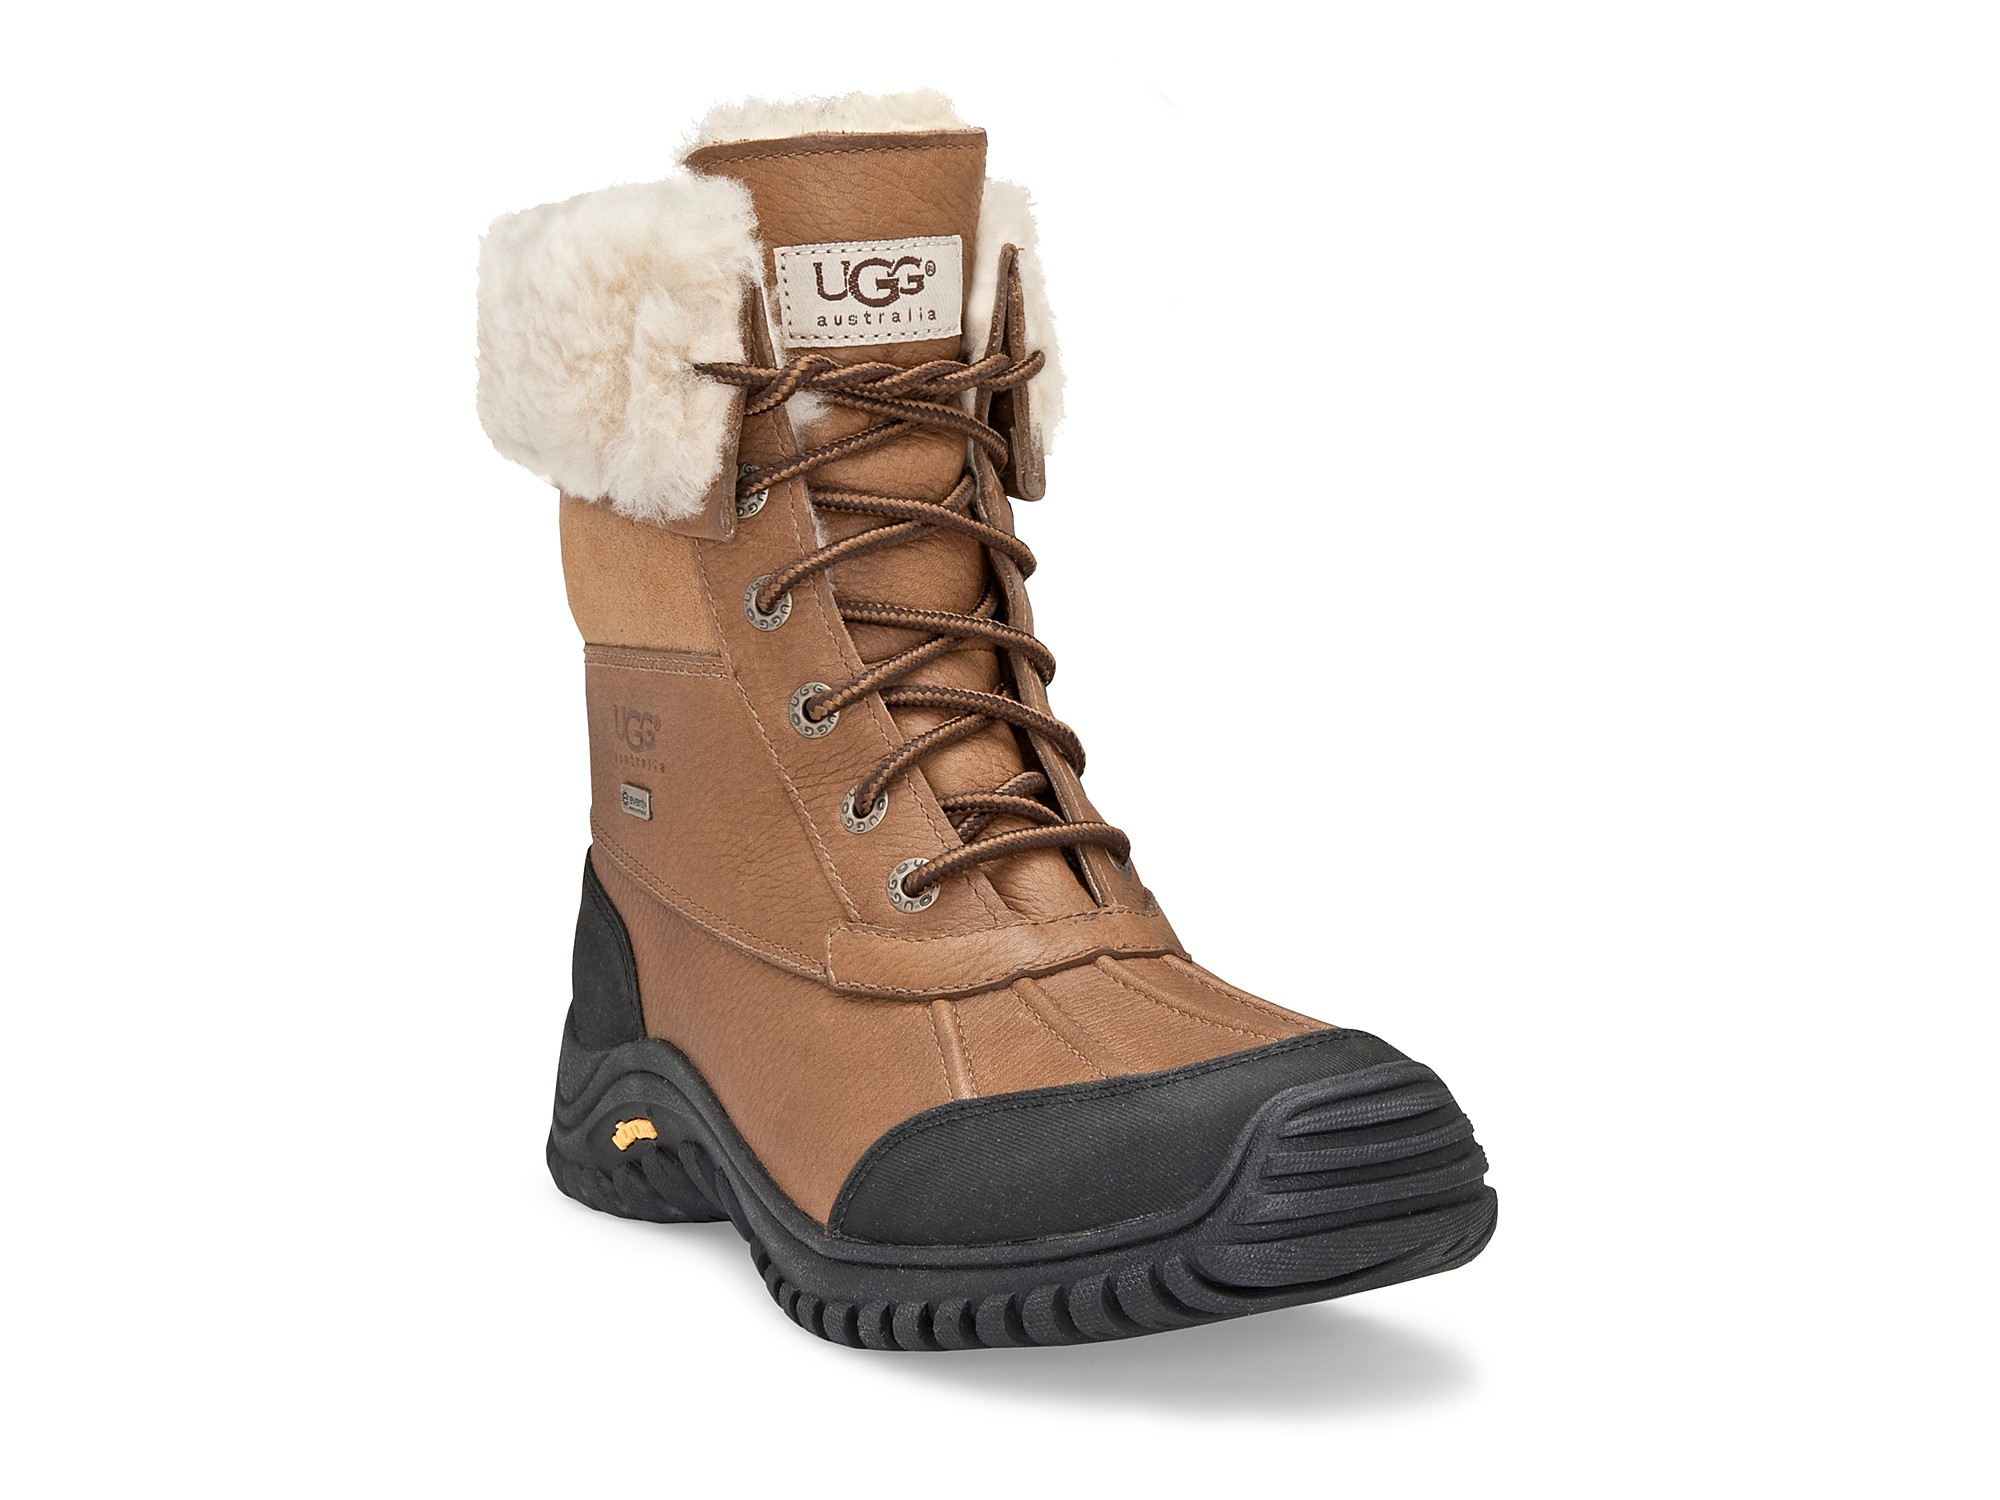 ugg adirondak snow boots in white lyst. Black Bedroom Furniture Sets. Home Design Ideas